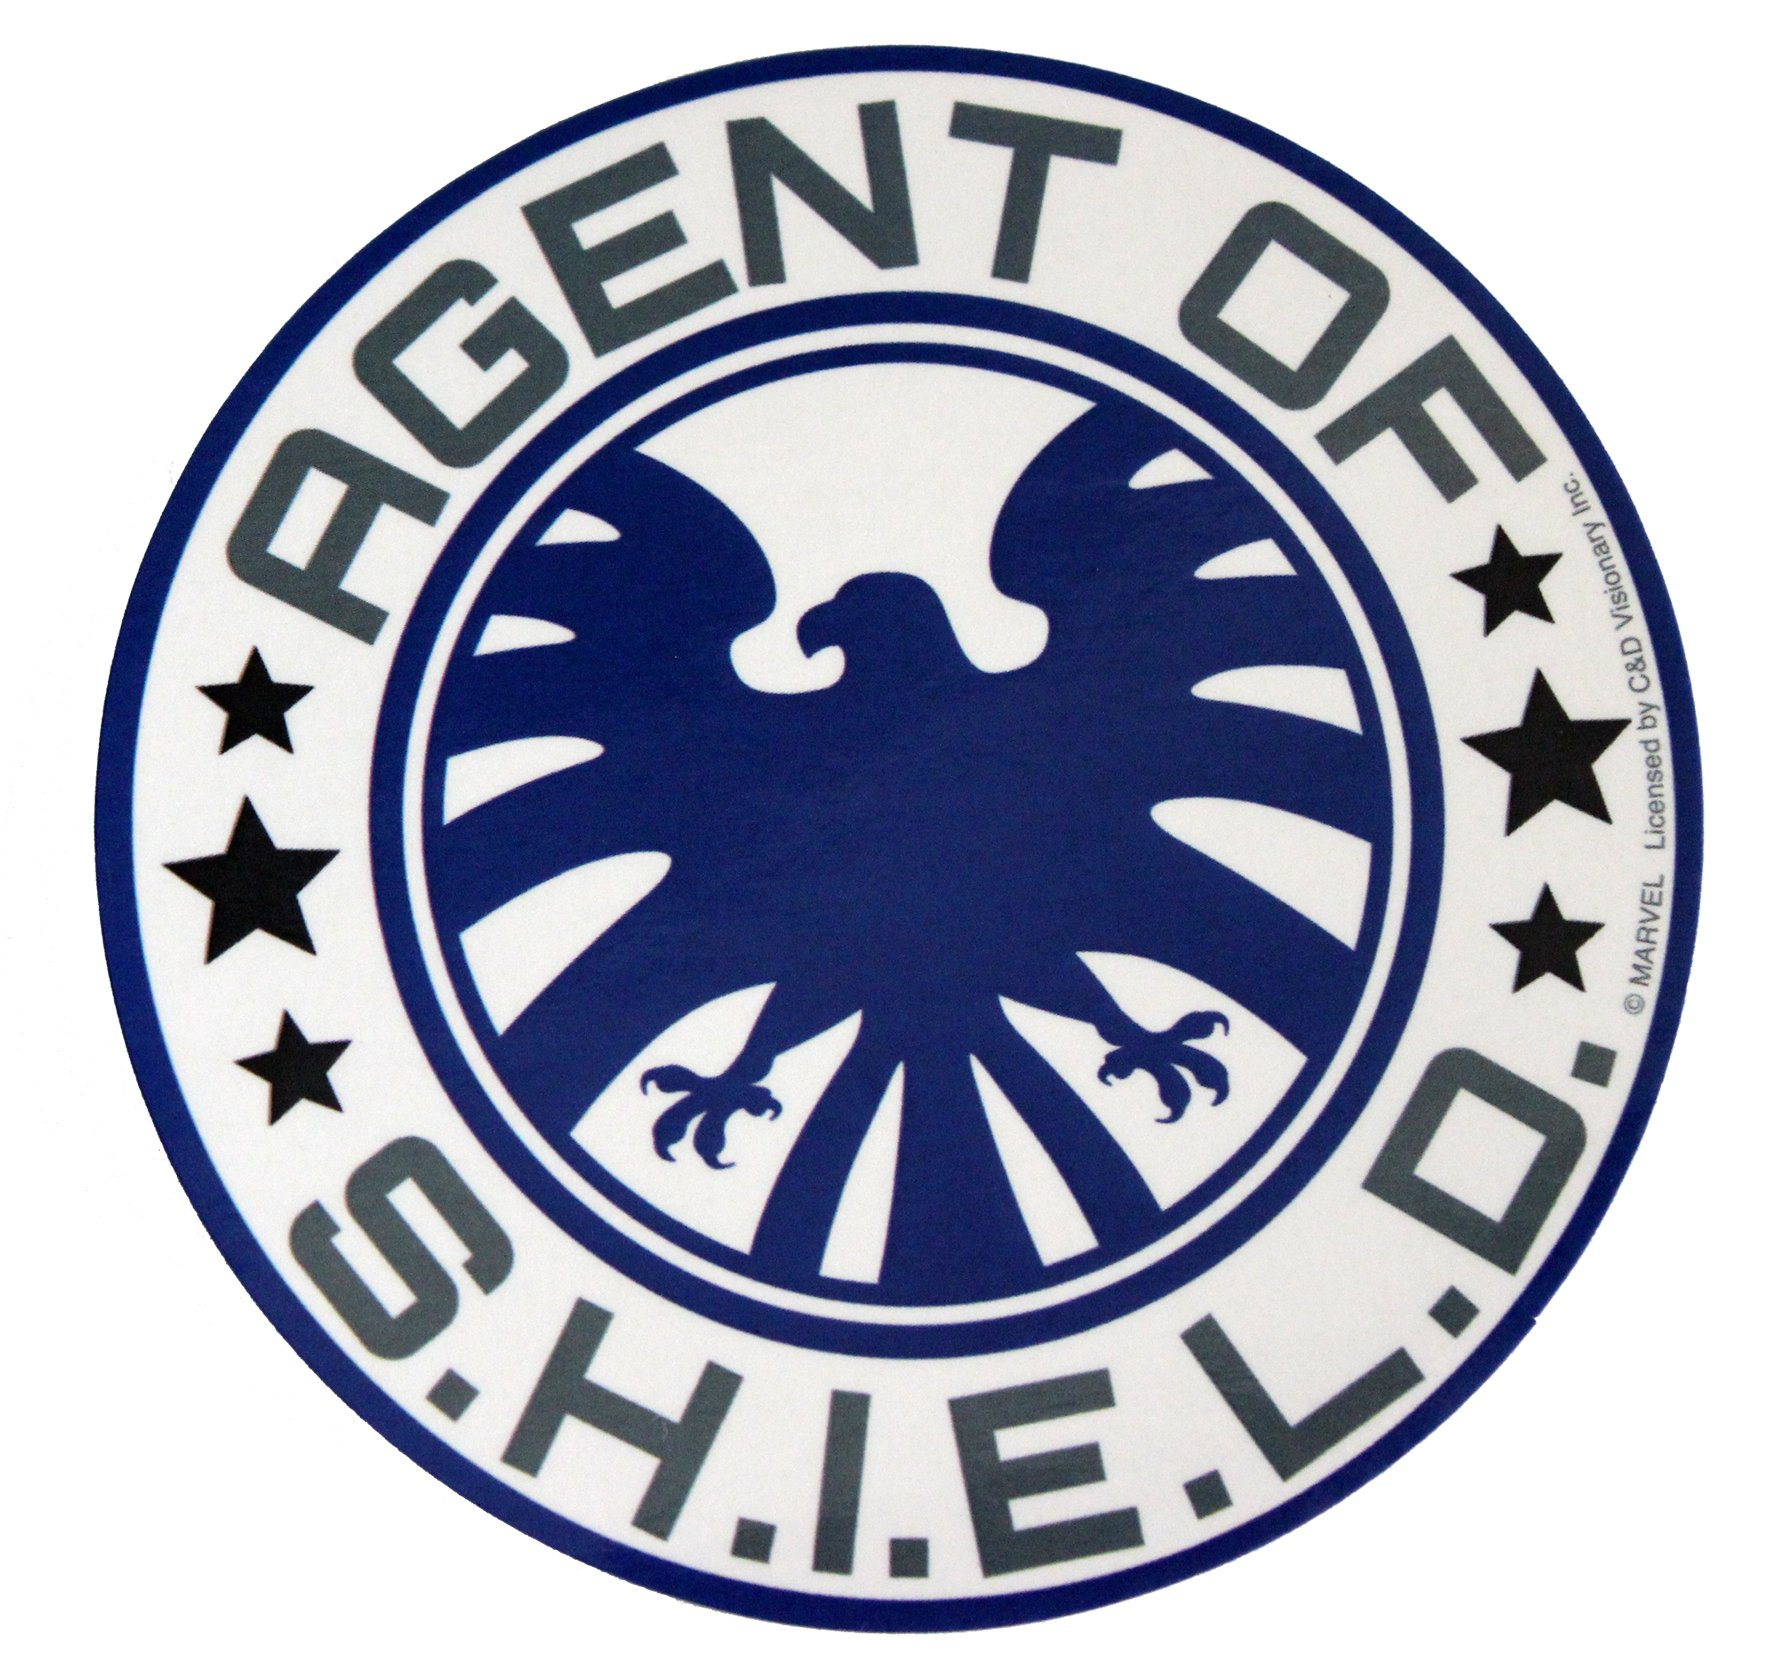 C&D Visionary Avengers Classic Agent of S.H.I.E.L.D Sticker Novelty